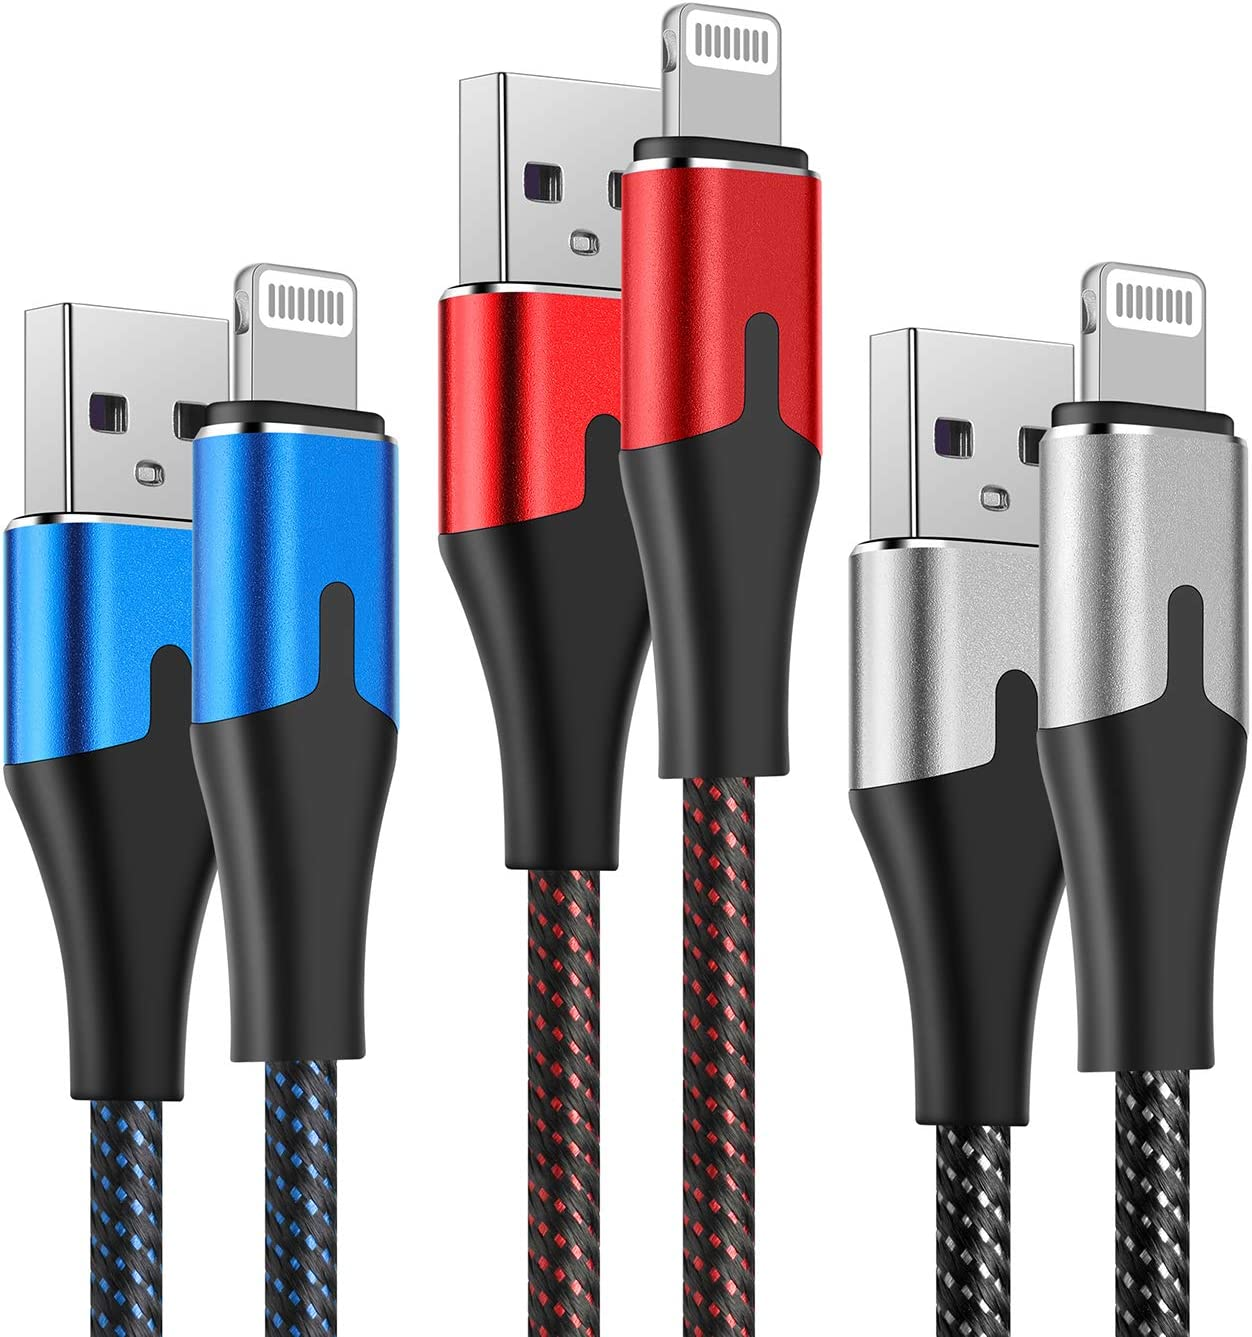 1 Foot Lightning Cable [MFi Certified] AJY Extra Long iPhone Charger 3Pack 1FT Nylon Braided Charging Cord for iPhone 11/11Pro/11Max/ X/XS/XR/XS Max/8/7/6/5S/SE/iPad Mini Air Silver Red Blue